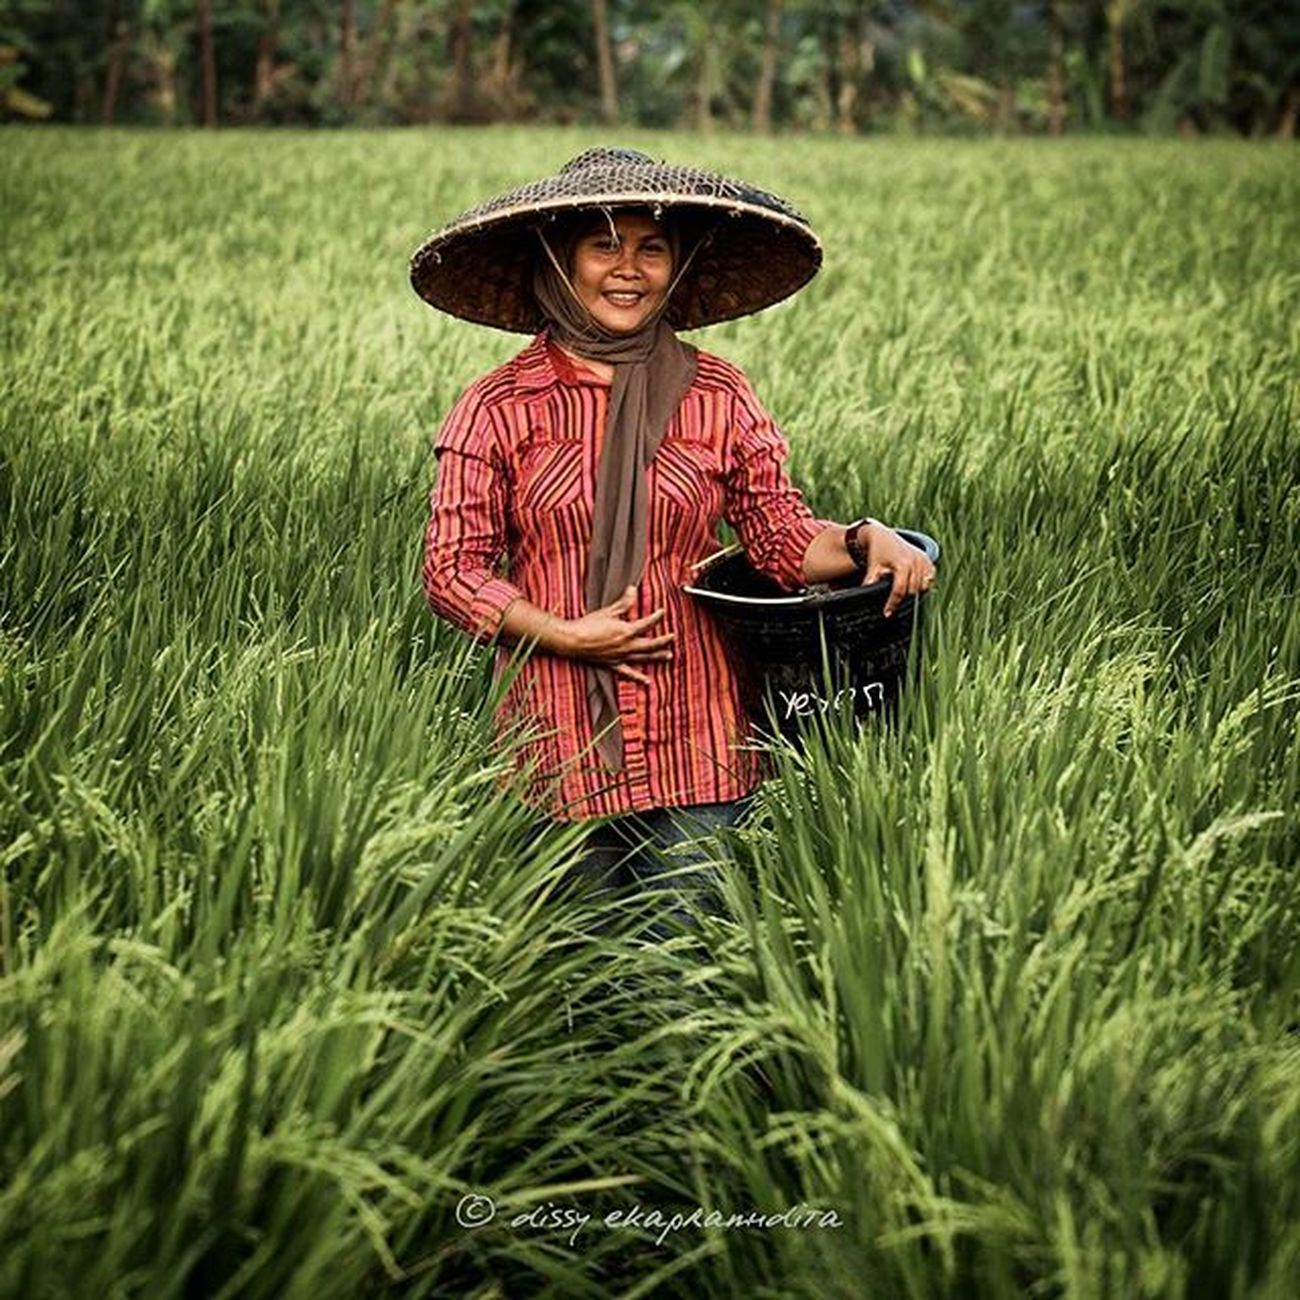 Happy world food day Worldfoodday Farmer Woman Petani INDONESIA 1000kata Instalike Instagram Instagood Instadaily Instamood Photooftheday Paddyfield Asiangeographic